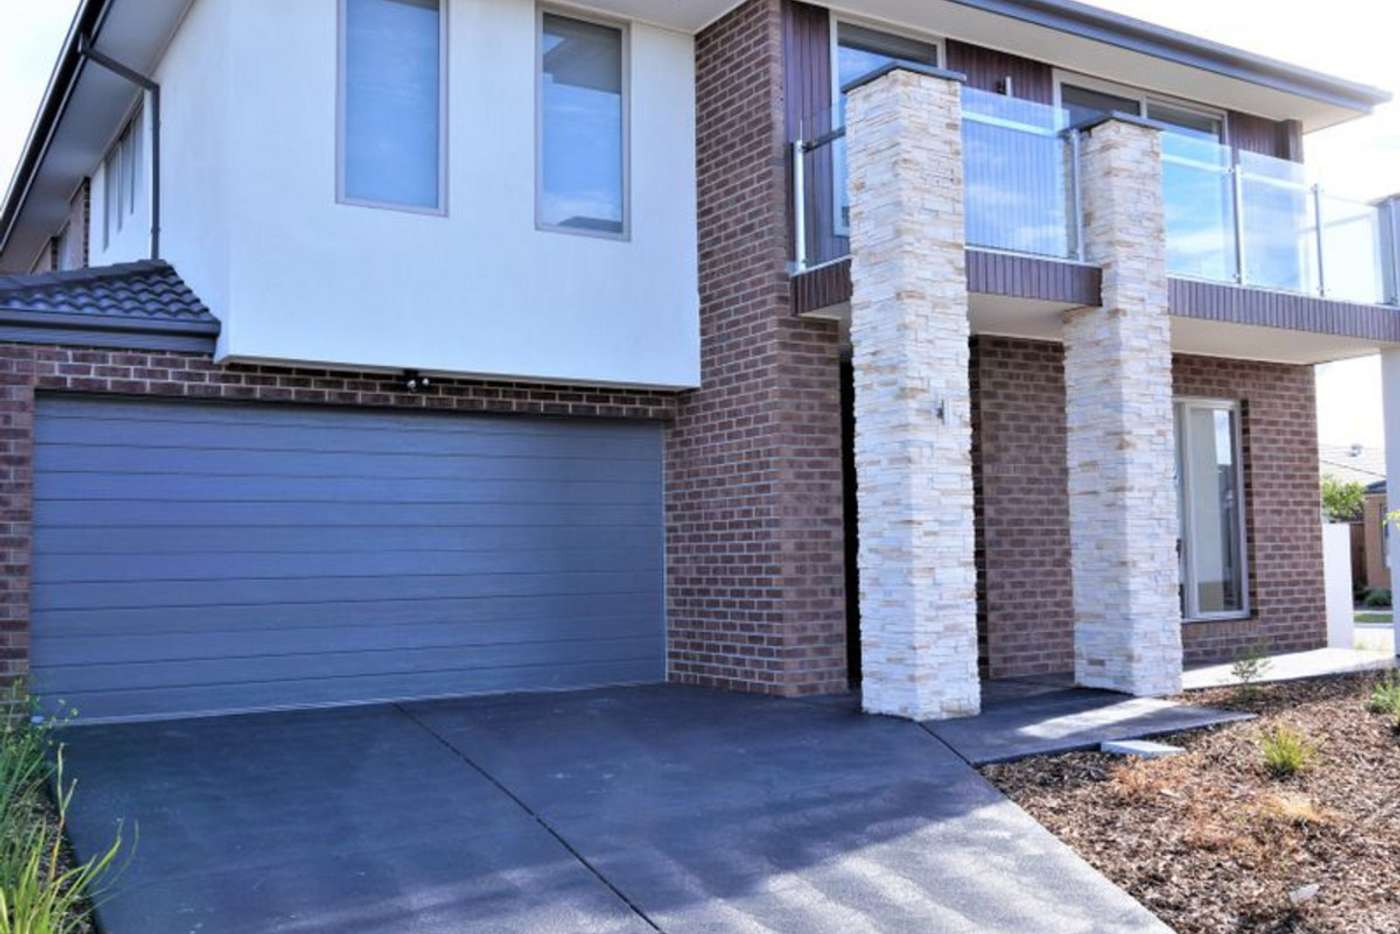 Main view of Homely house listing, 13 Sound Way, Point Cook VIC 3030